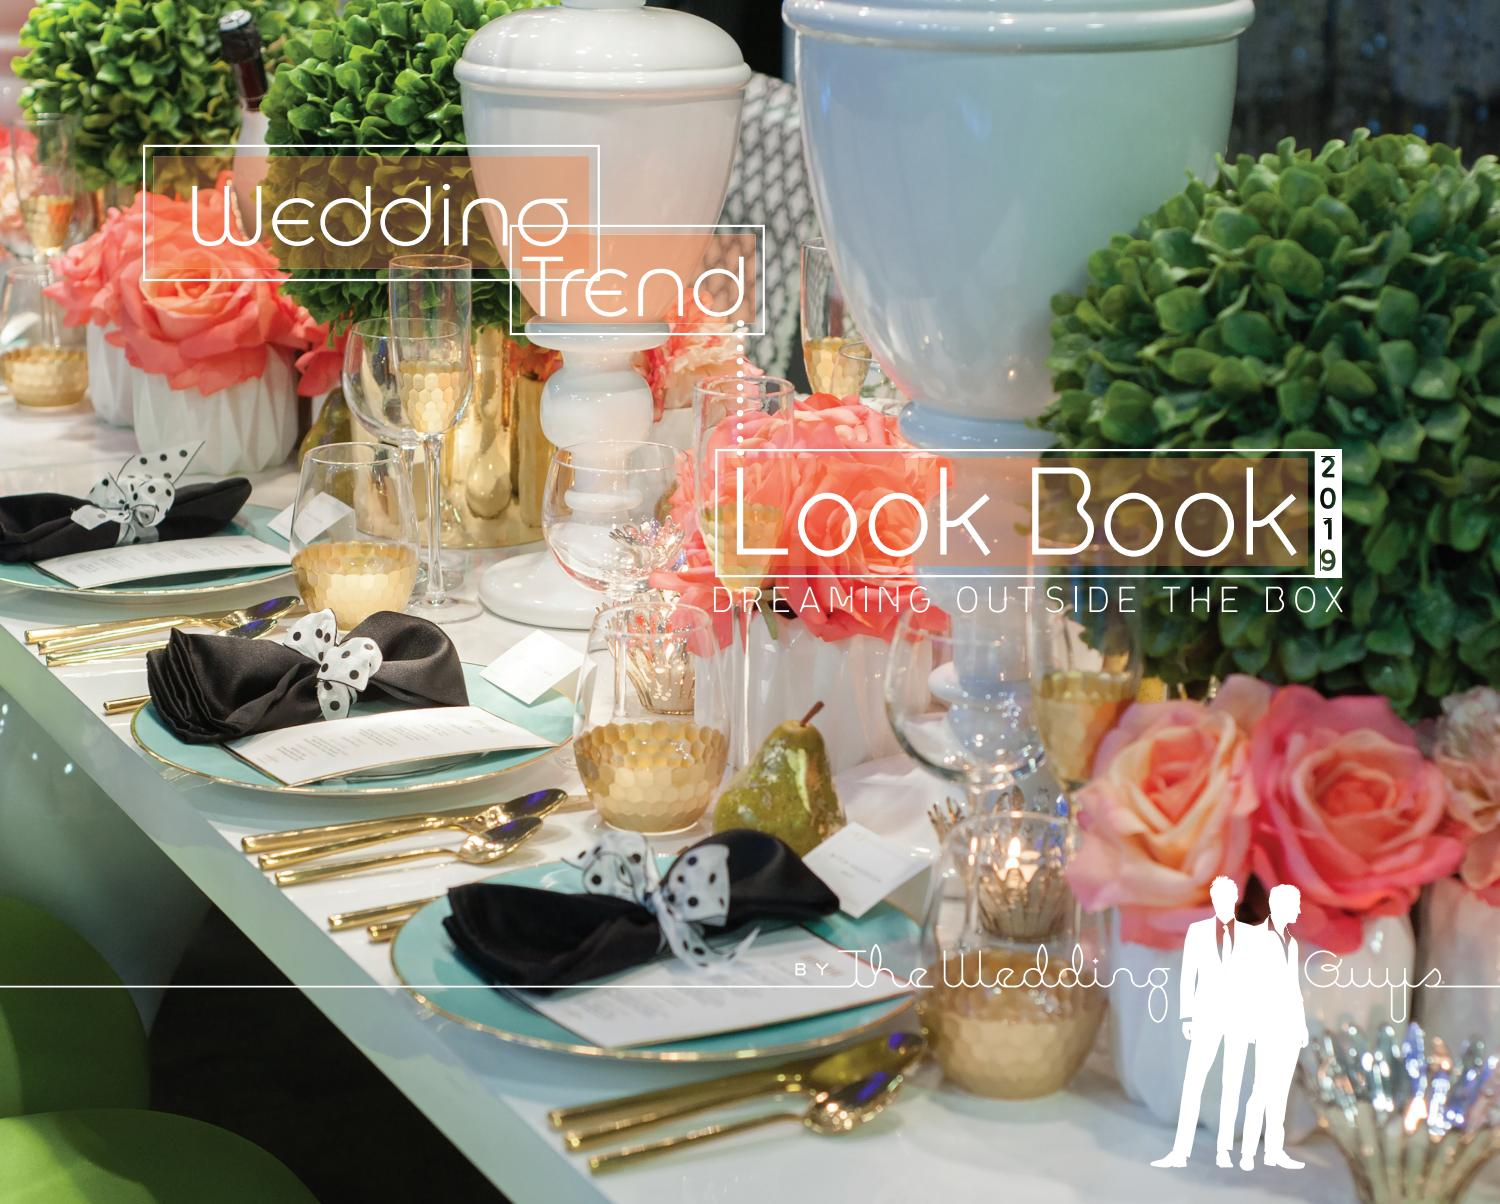 2019 Wedding Trend Look Book By The Wedding Guys Issuu